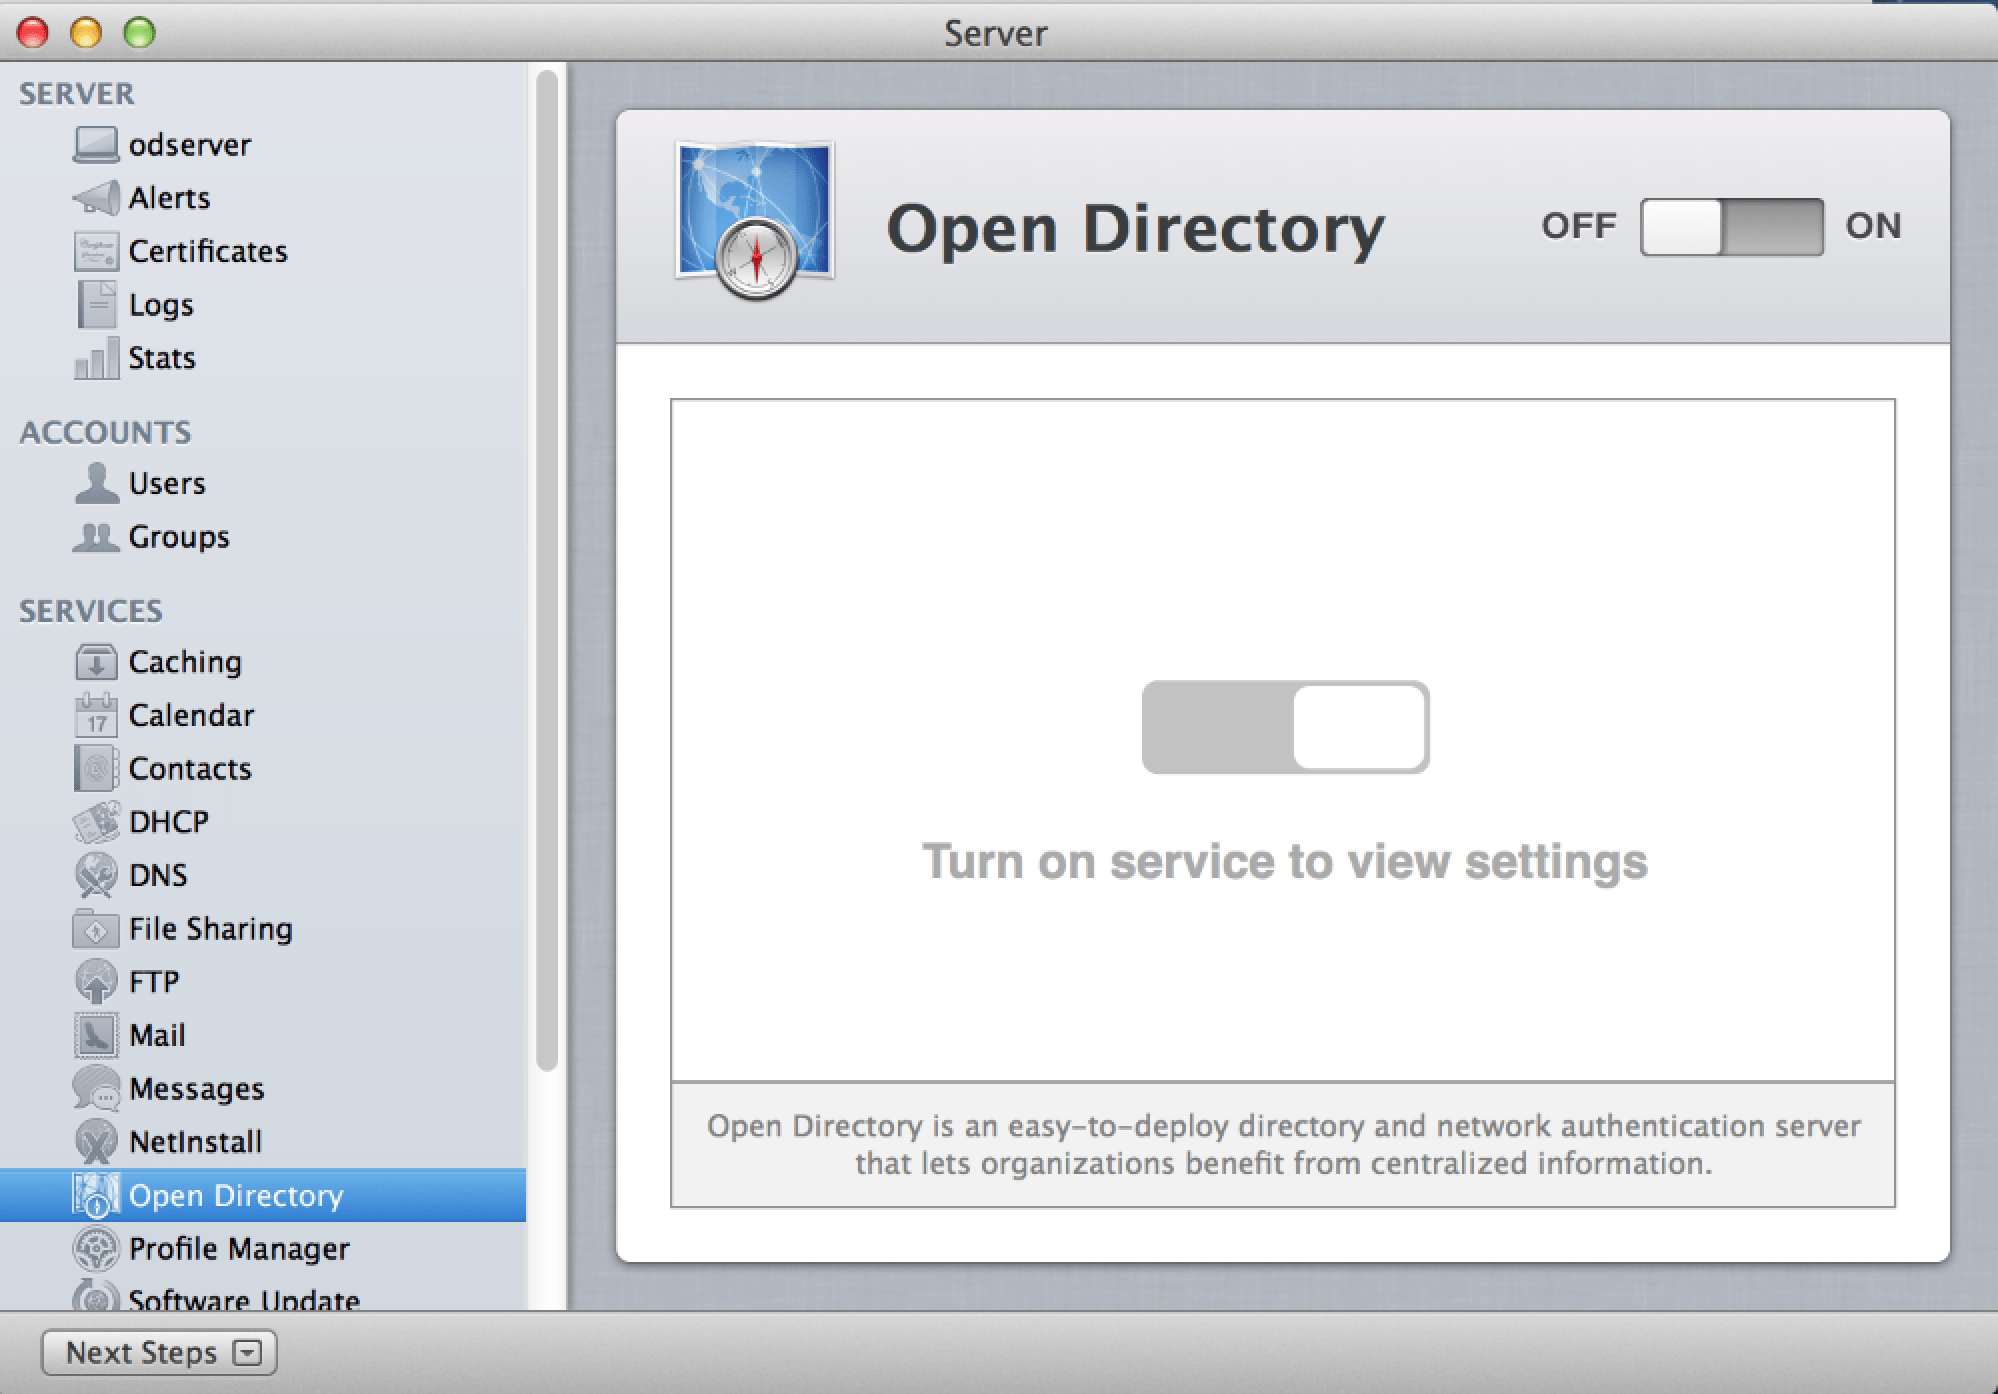 Screenshot 2.1 - Open Directory Setup - Select Open Directory